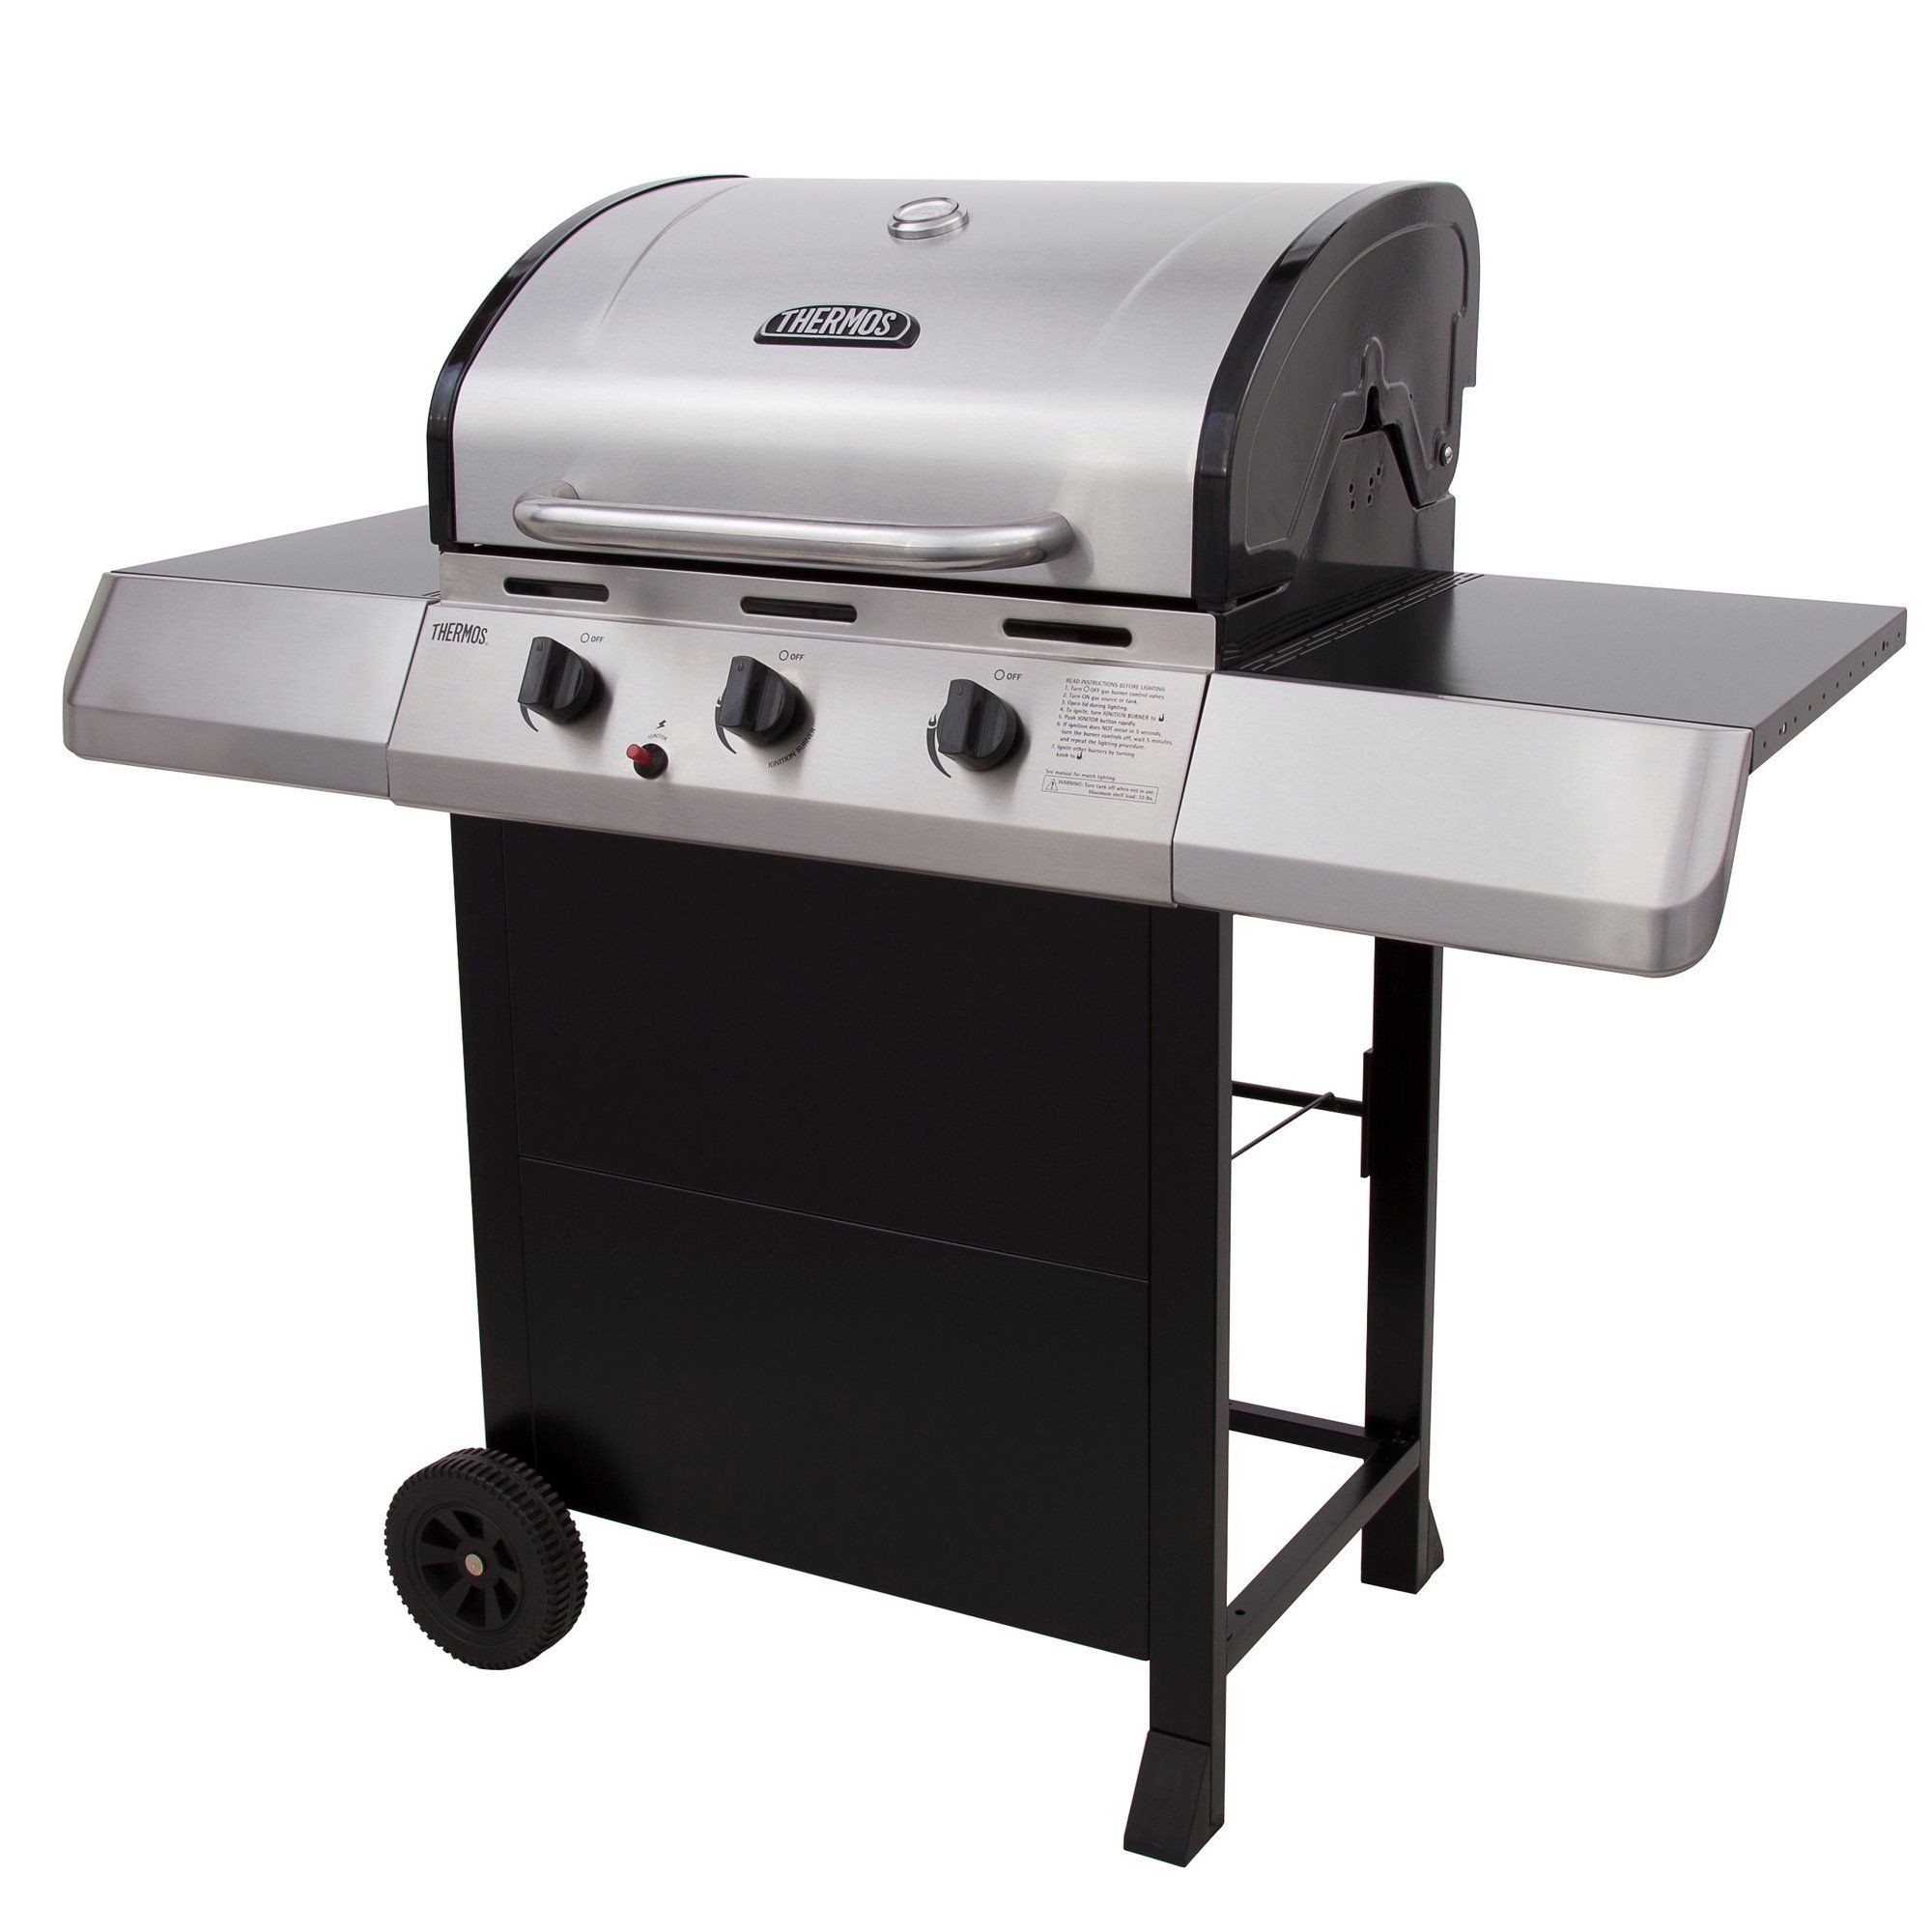 3 burner propane gas grill with side shelves propane gas grill